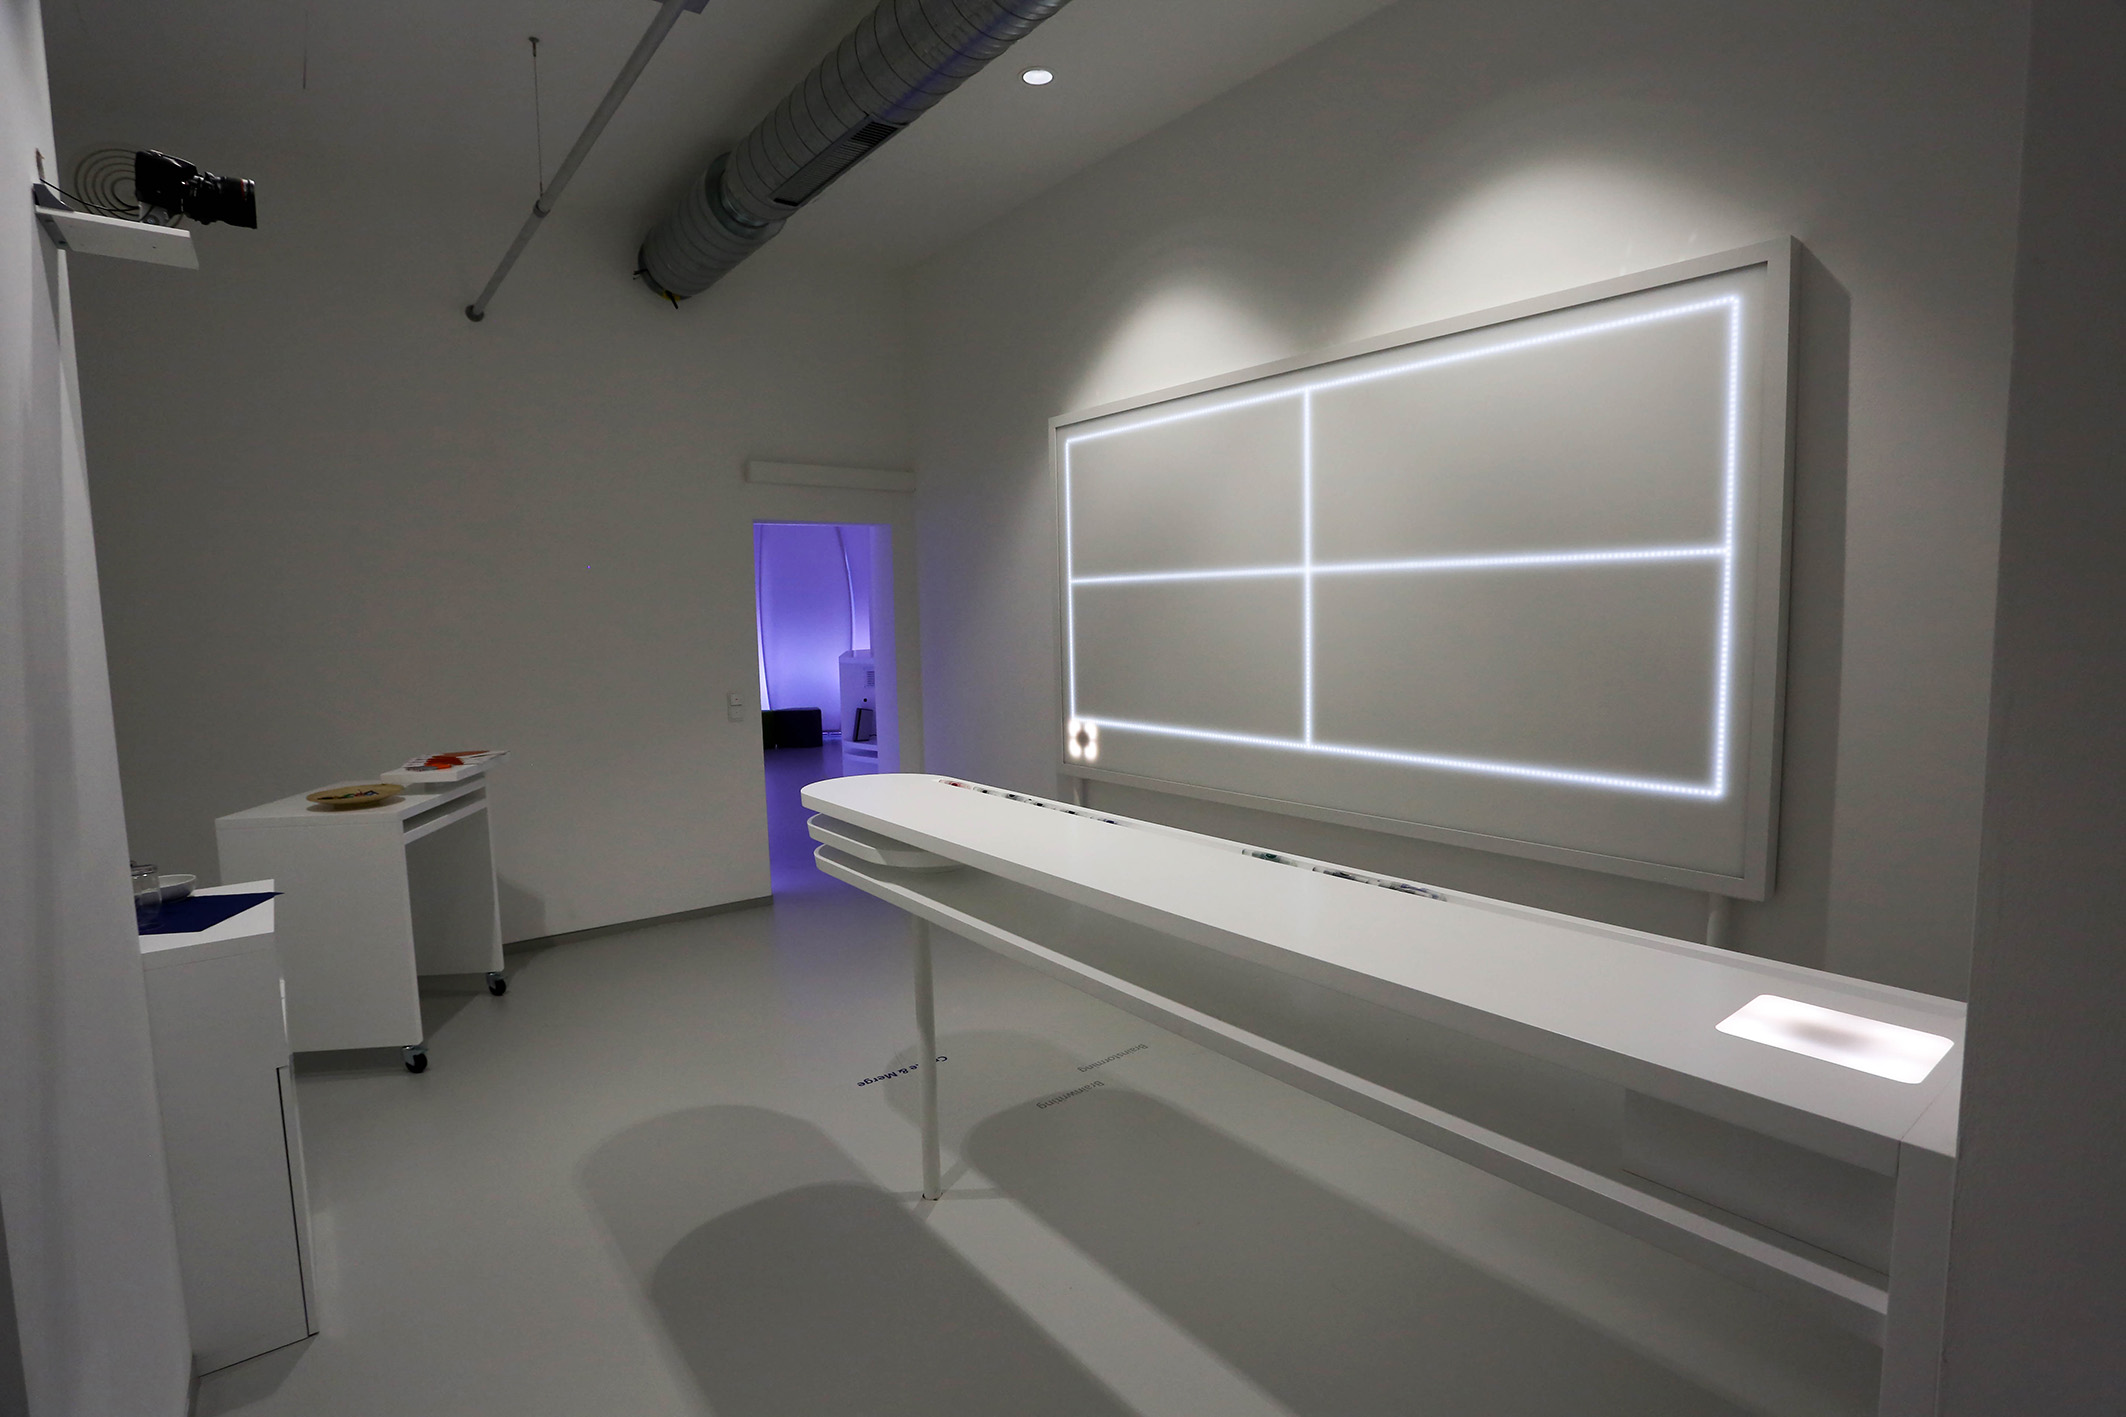 GS1_CreativeLab_LED-Whiteboard-5106